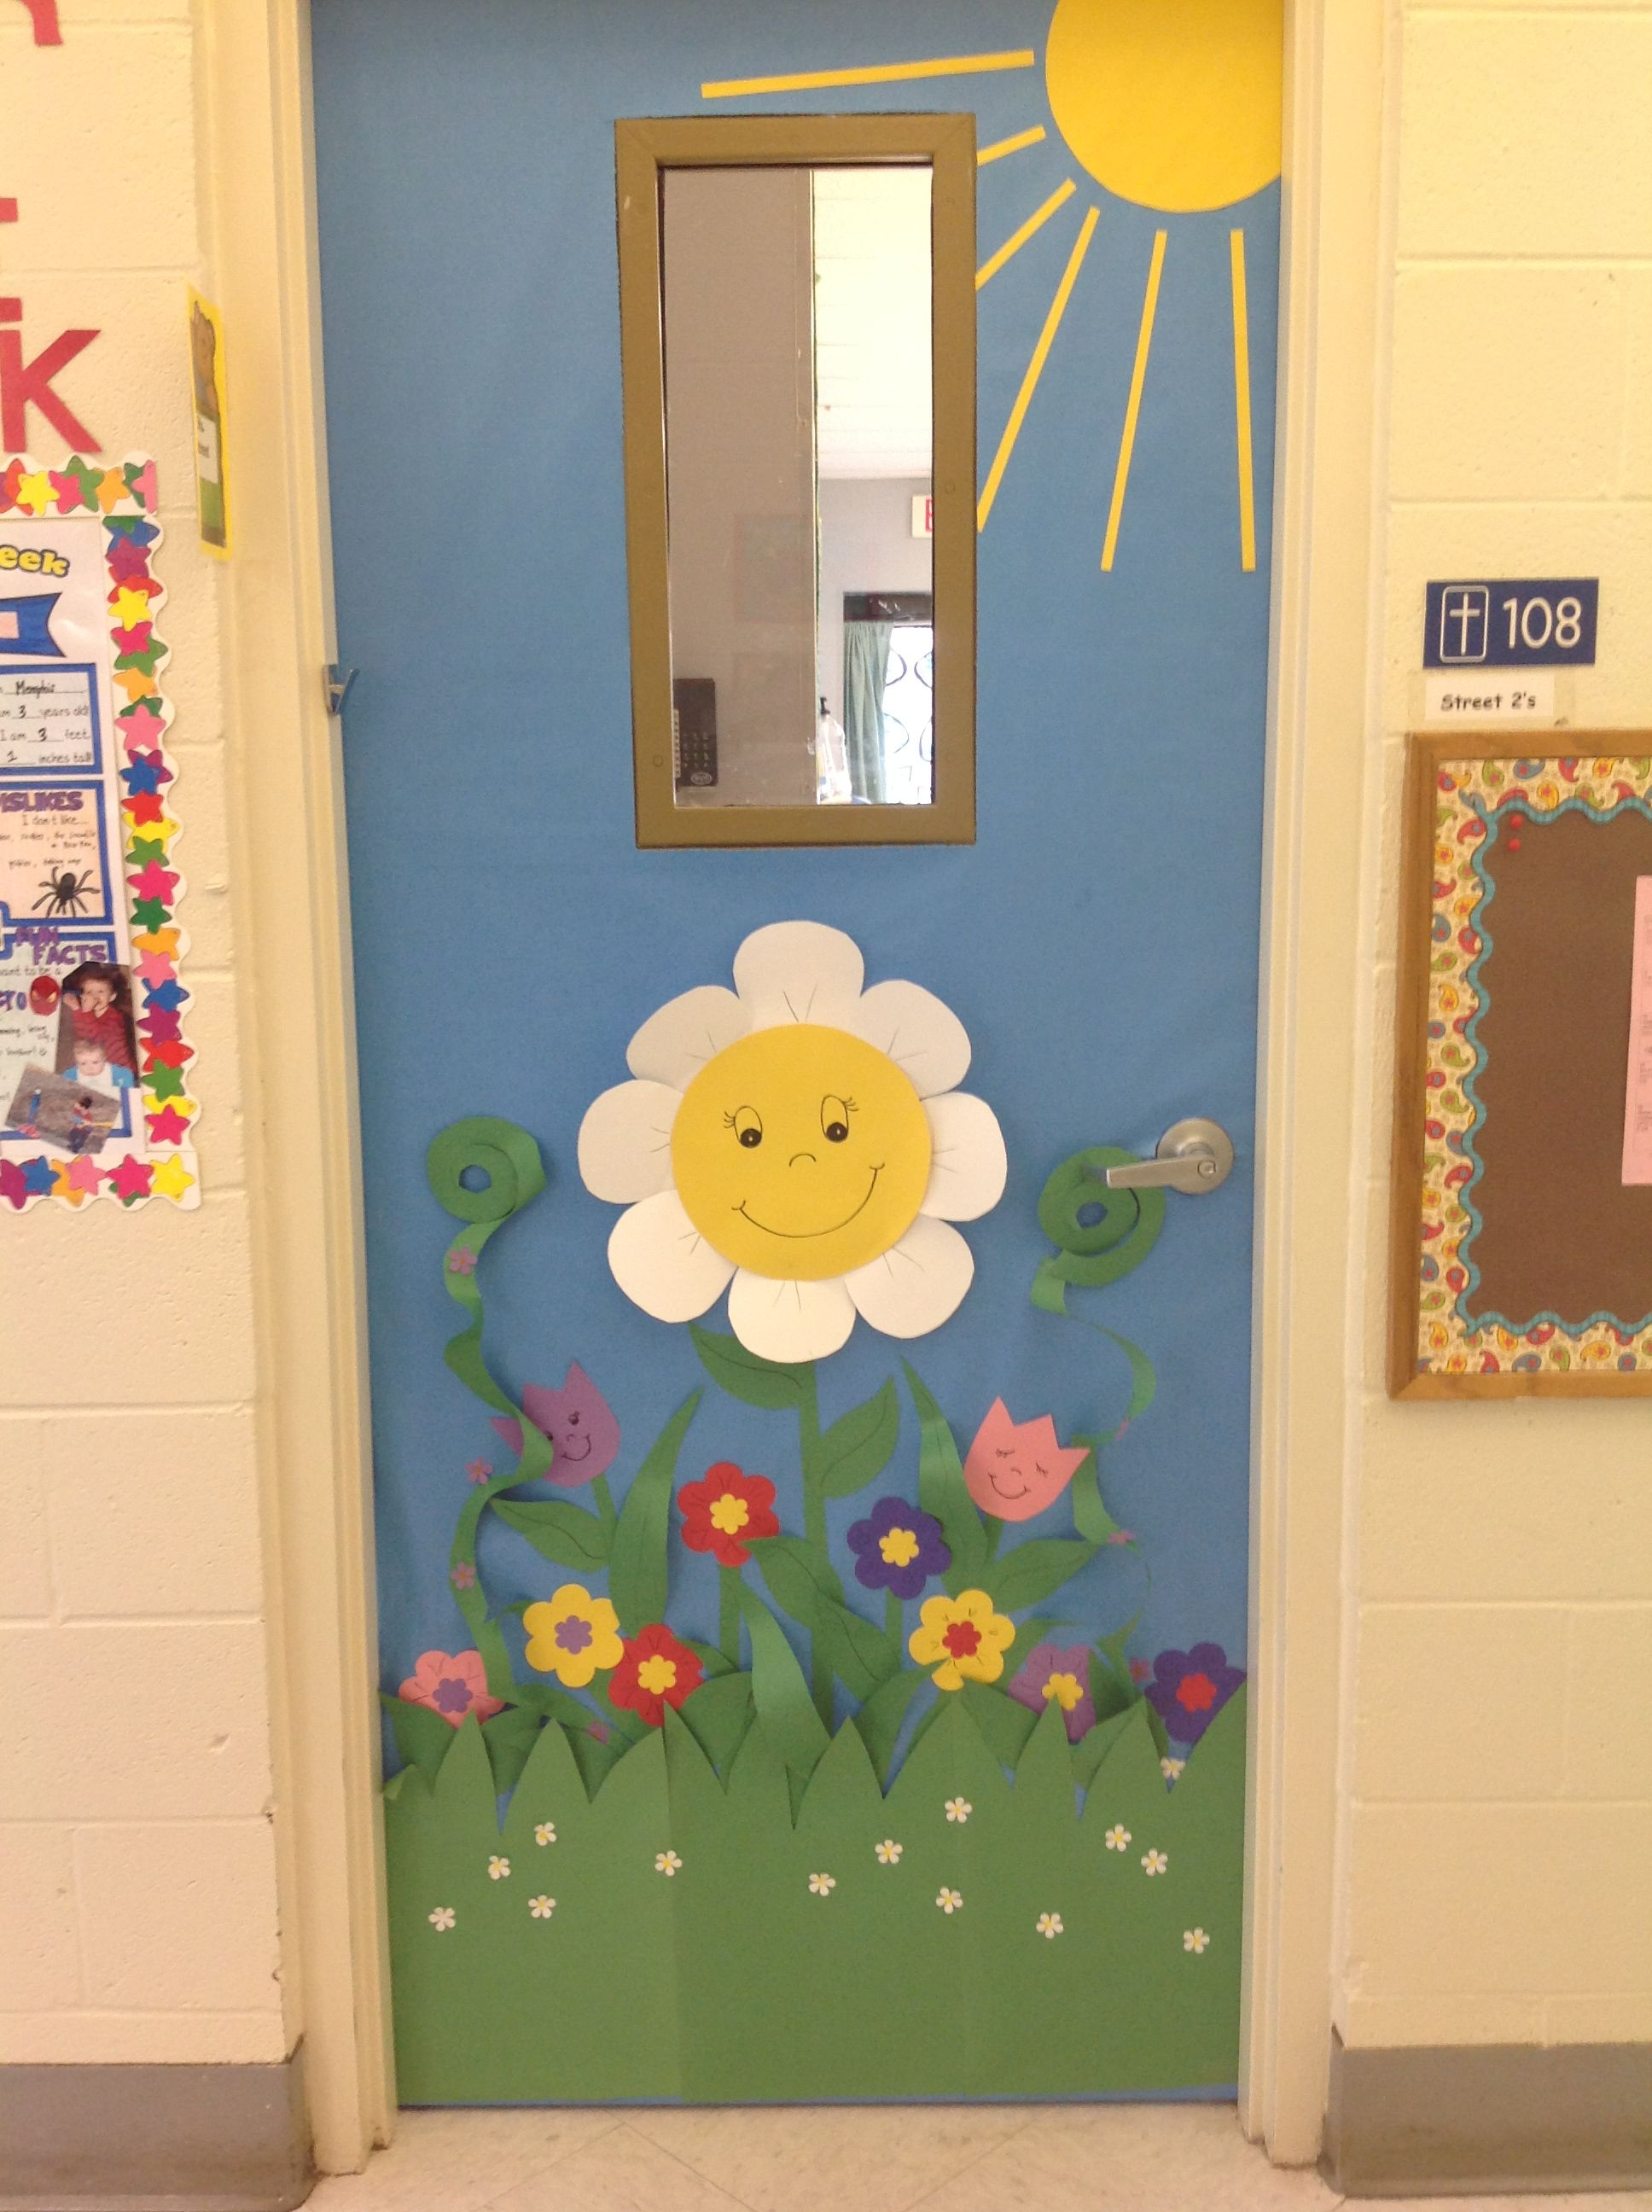 Classroom Door Decoration Ideas Spring ~ Spring classroom door idea a garden of happy flowers you